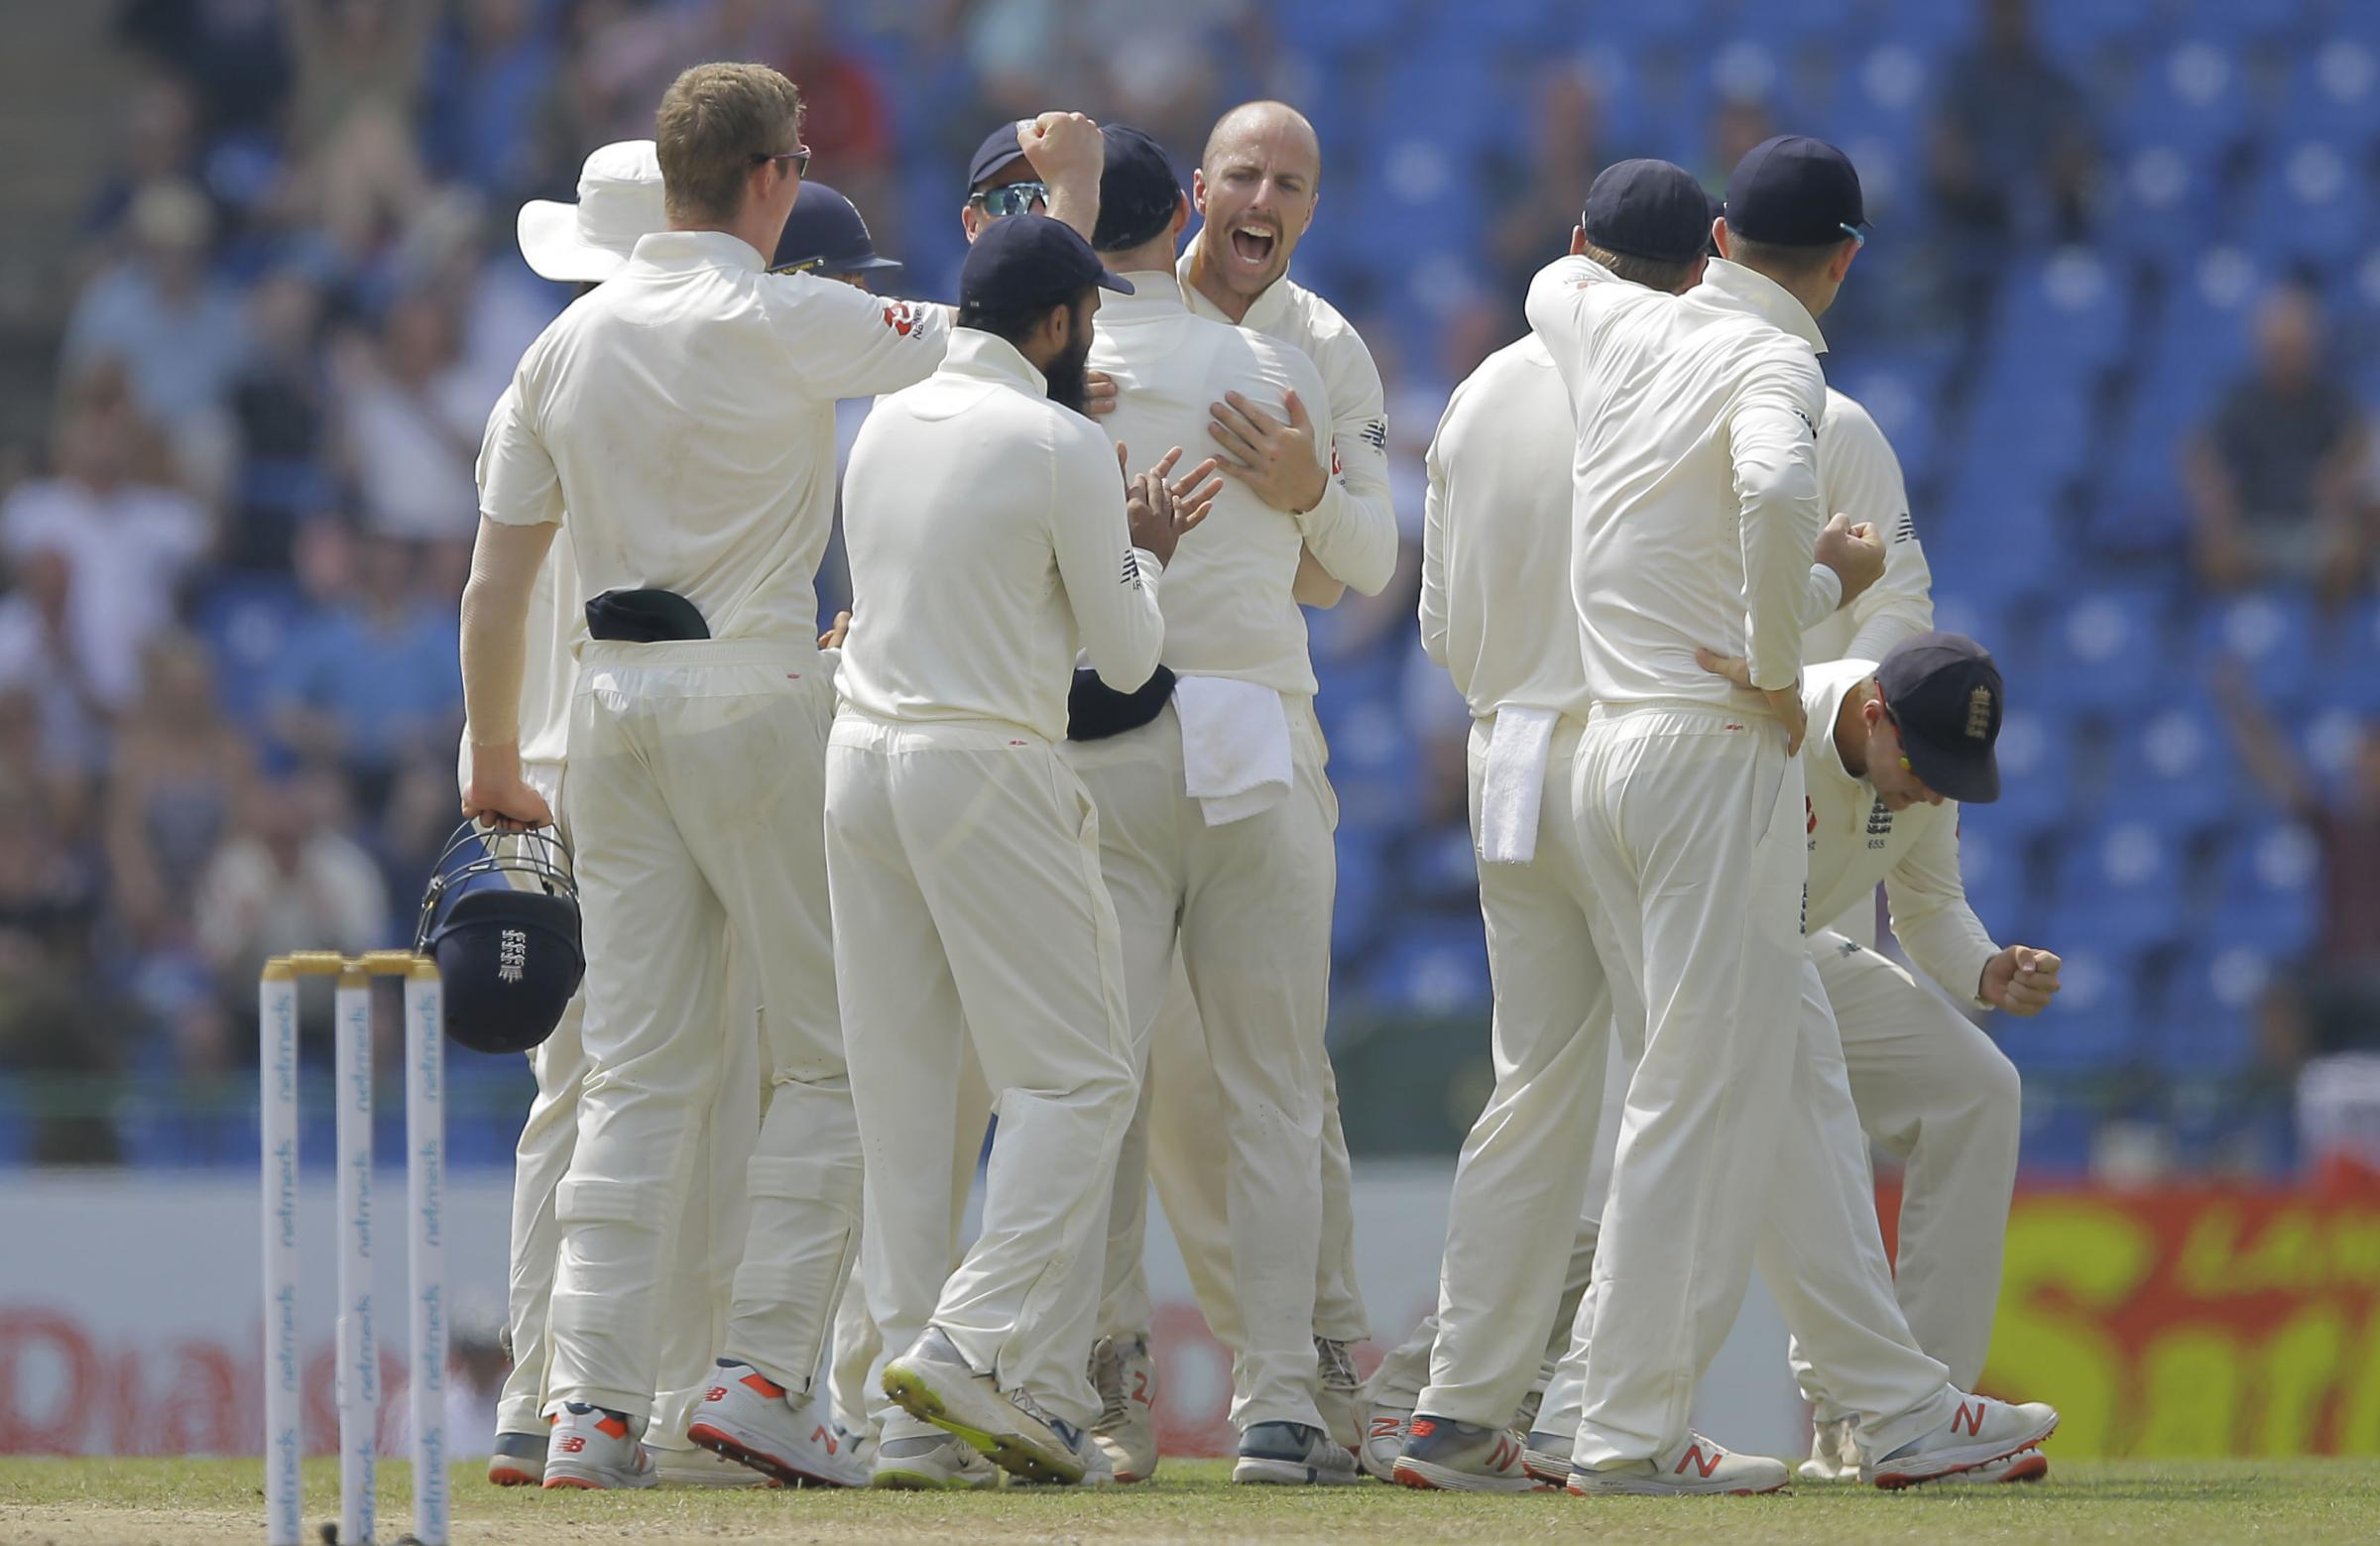 TURNAROUND: England's bowlers seized control on day two of the third Test in Sri Lanka.